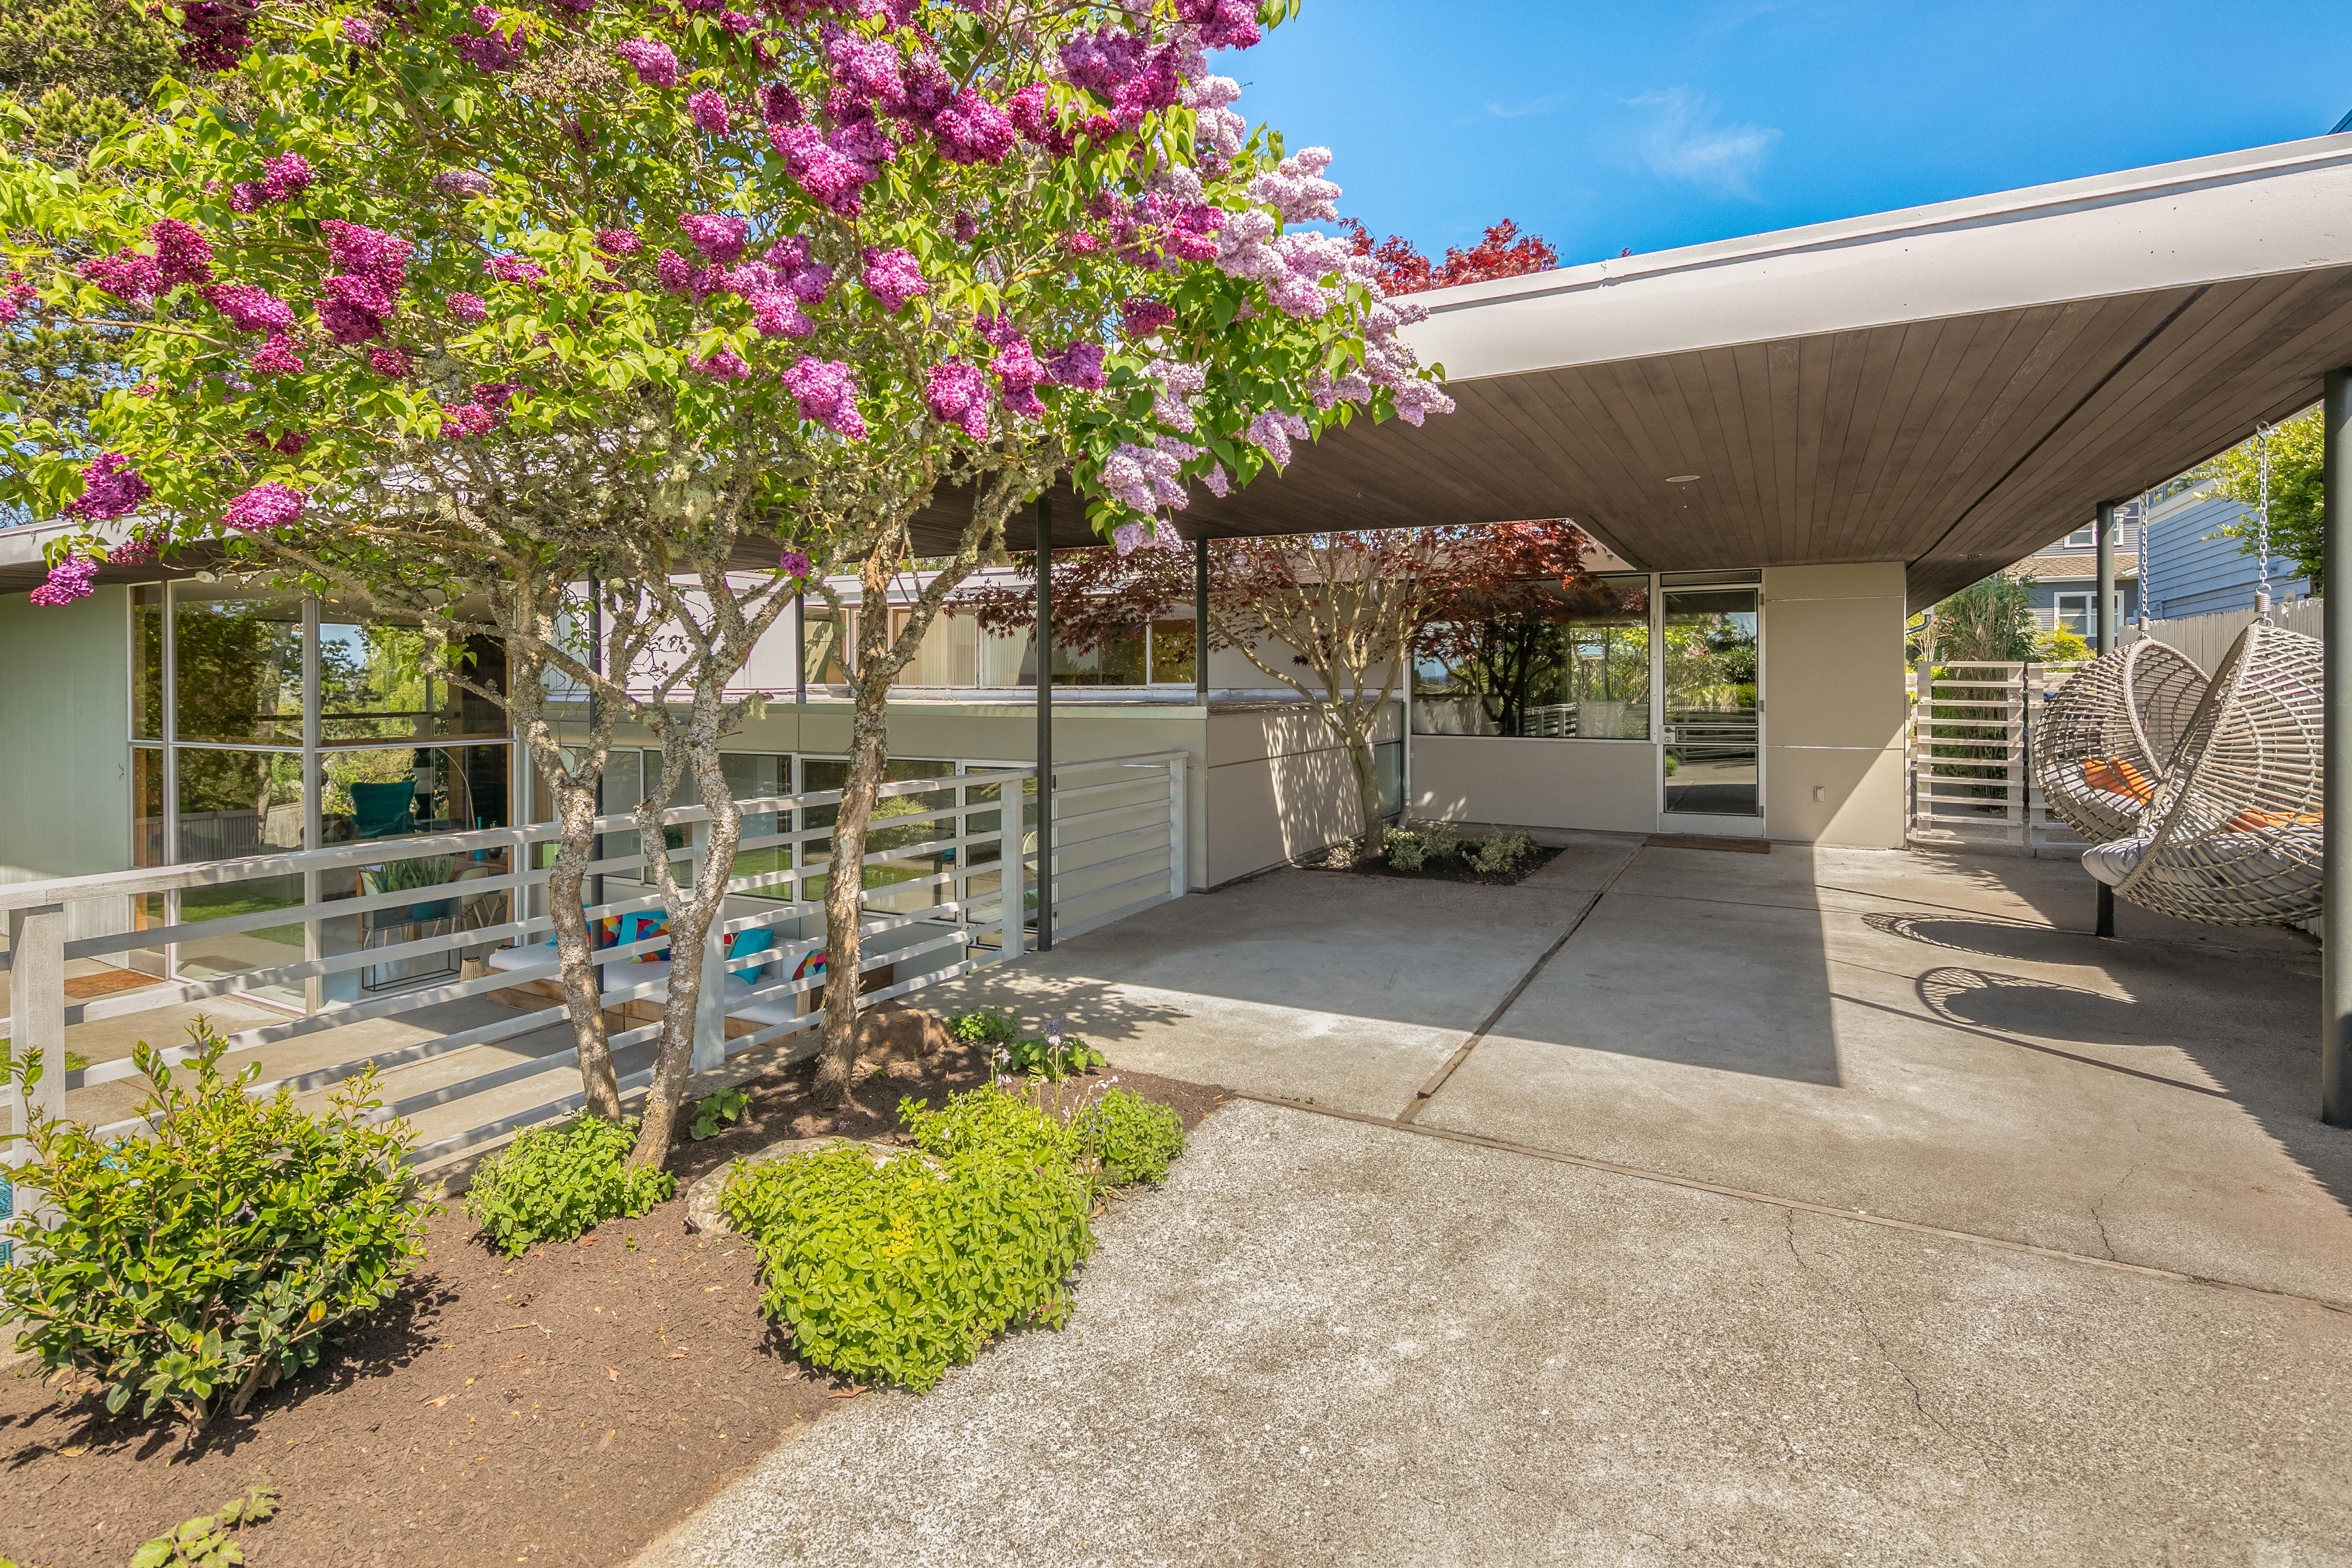 "For all you Mid-century modern enthusiasts, this home is not to be missed. Local architect Robert Dietz (who served on the design committee for the '62 World's Fair and Dean of the UW School of Architecture), designed this home back in the heyday of his career.{&nbsp;}<a  href=""https://www.windermere.com/listing/WA/Seattle/3455-38th-Ave-W-98199/94926847"" target=""_blank"" title=""https://www.windermere.com/listing/WA/Seattle/3455-38th-Ave-W-98199/94926847"">Listed for $1,888,000 by Windermere</a>, the dramatic two-story banks of windows ""interplay with more intimate spaces, with spectacular terrazzo flooring in the entry and living room."" There is also indoor and outdoor connectivity from multiple rooms. The 3,869 square footer has 5 beds and 2.5 baths.{&nbsp;}<a  href=""https://www.windermere.com/listing/WA/Seattle/3455-38th-Ave-W-98199/94926847"" target=""_blank"" title=""https://www.windermere.com/listing/WA/Seattle/3455-38th-Ave-W-98199/94926847"">Find this listing on Windermere MLS #1446852</a>{&nbsp;}(Image: Brandy Gaebler / Clarity NW Photography)."